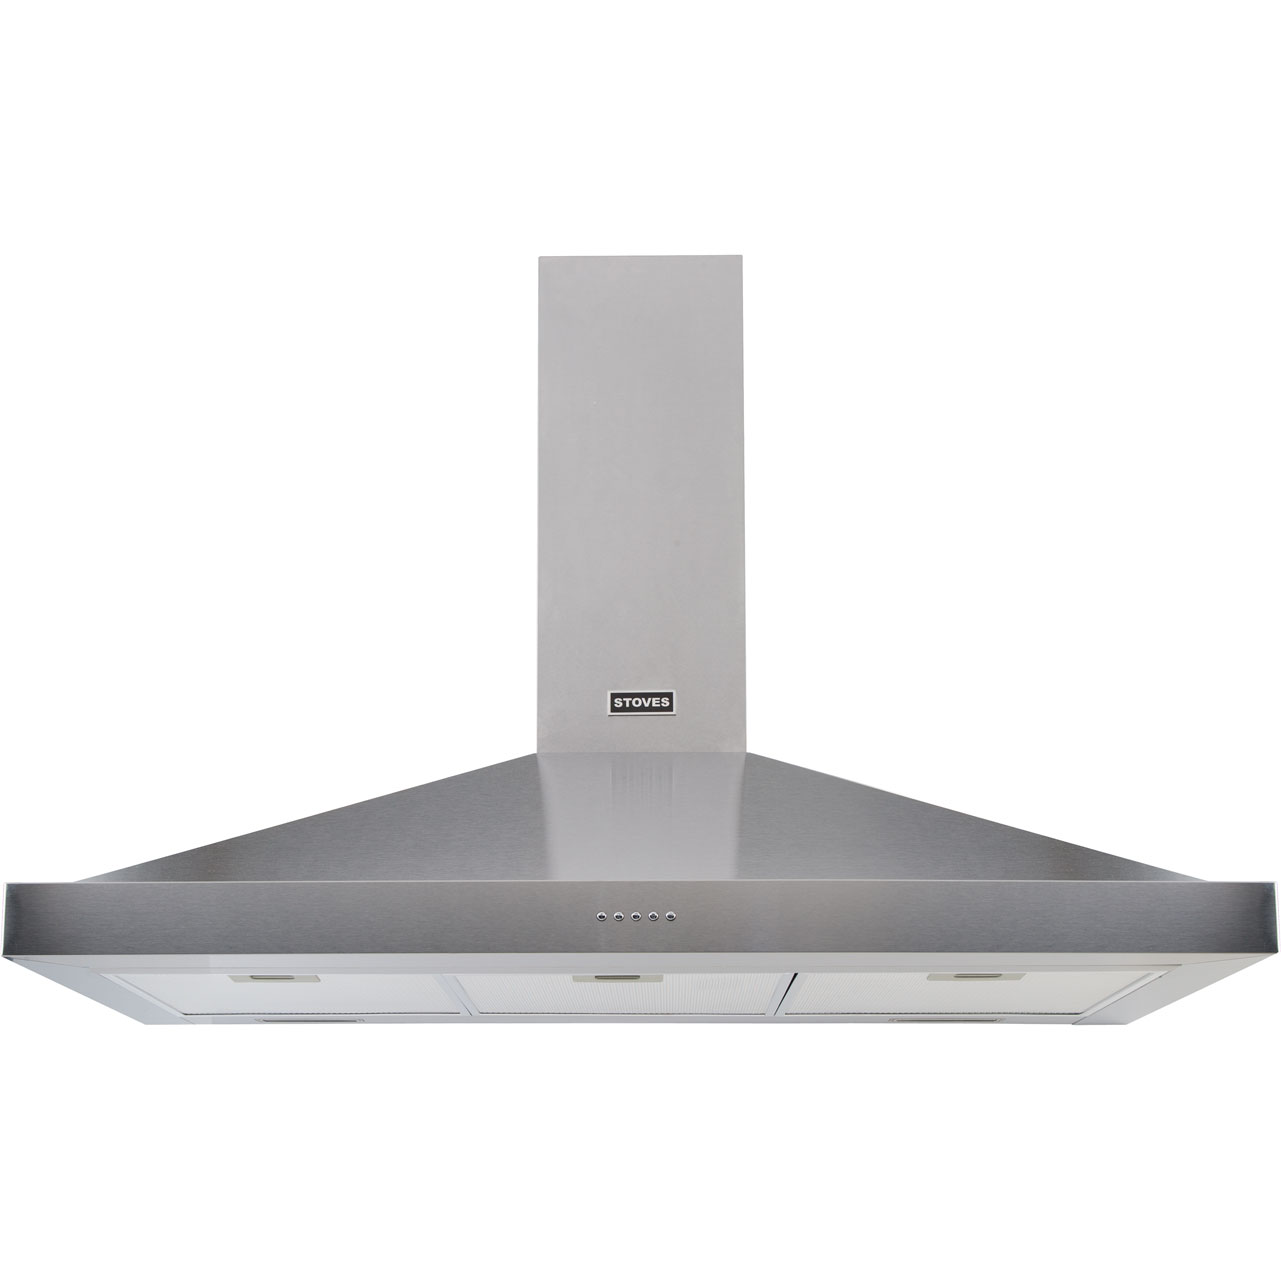 Stoves 1000STERLINGCHMK2 Integrated Cooker Hood in Stainless Steel